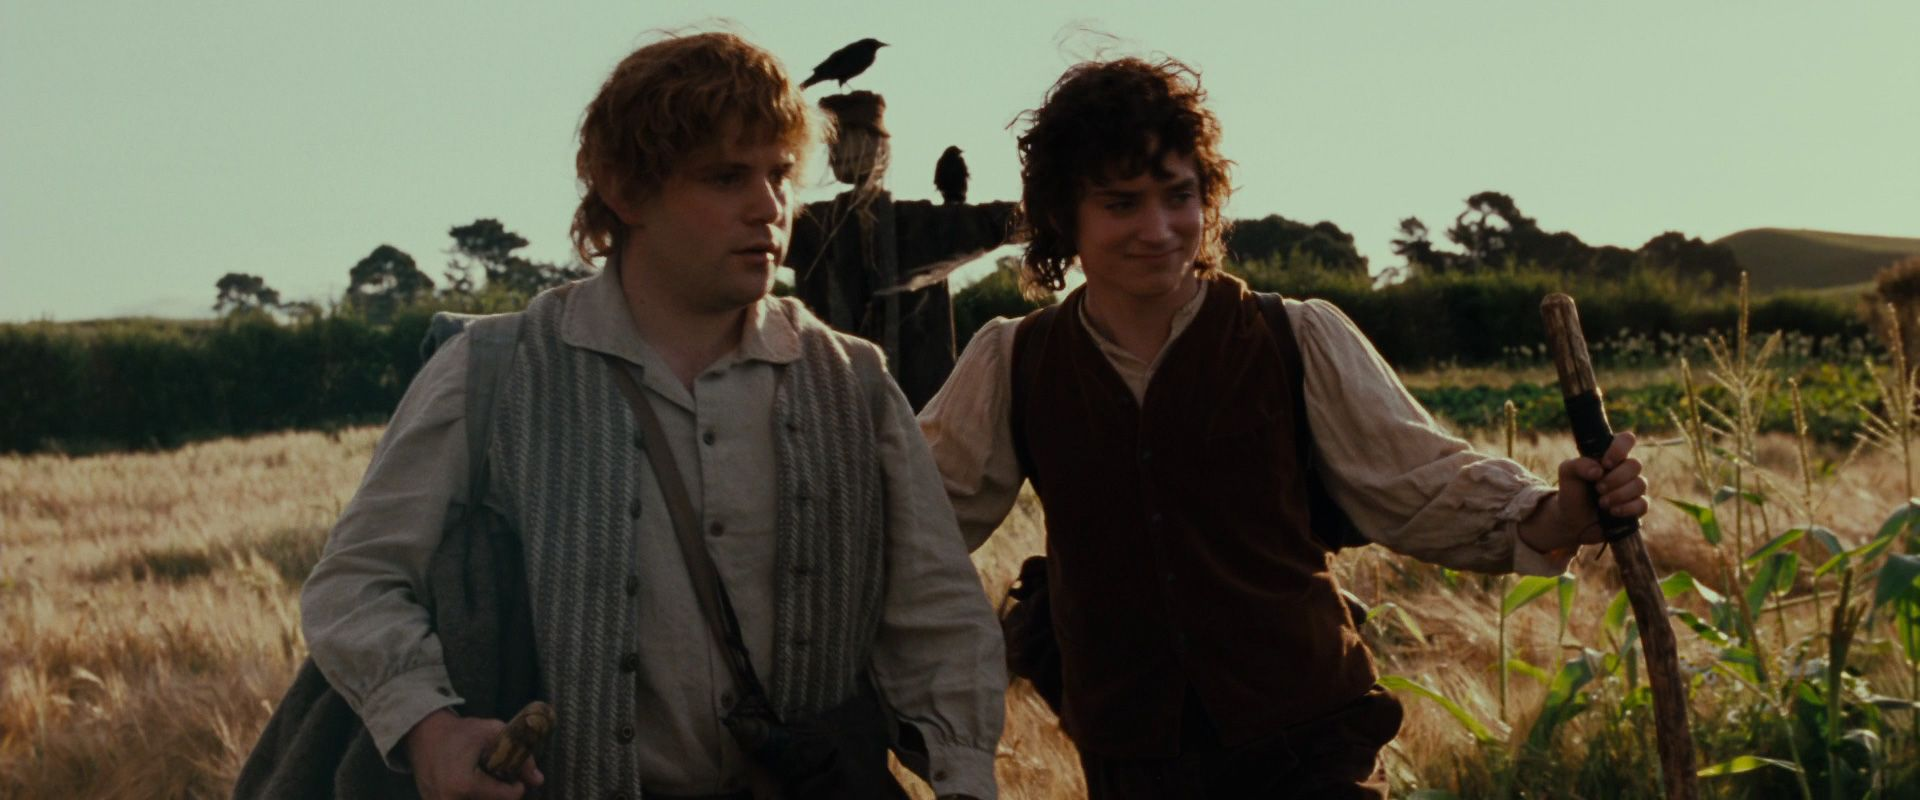 http://images6.fanpop.com/image/photos/36000000/Frodo-Sam-image-frodo-and-sam-36084238-1920-800.jpg